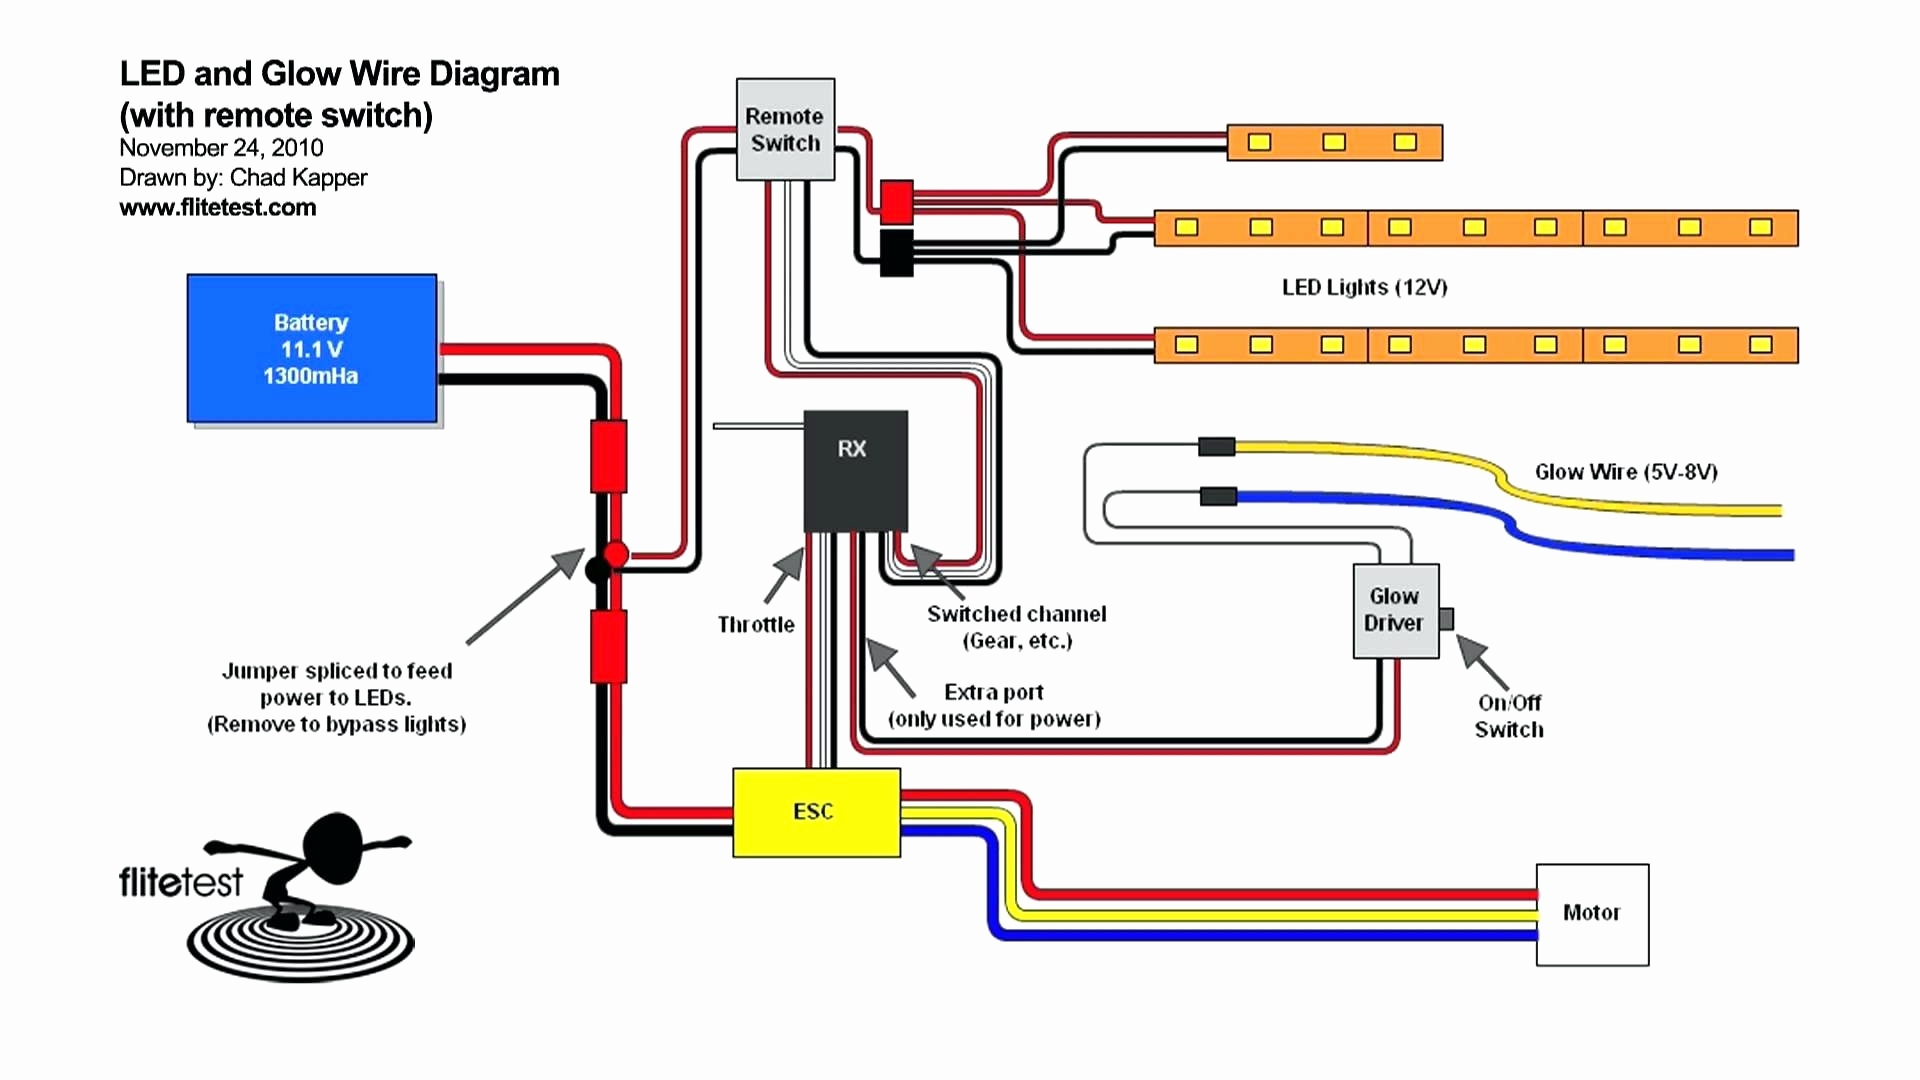 Led Light 12V 3 Wire Wiring Diagram | Wiring Diagram - Led Trailer Light Wiring Diagram